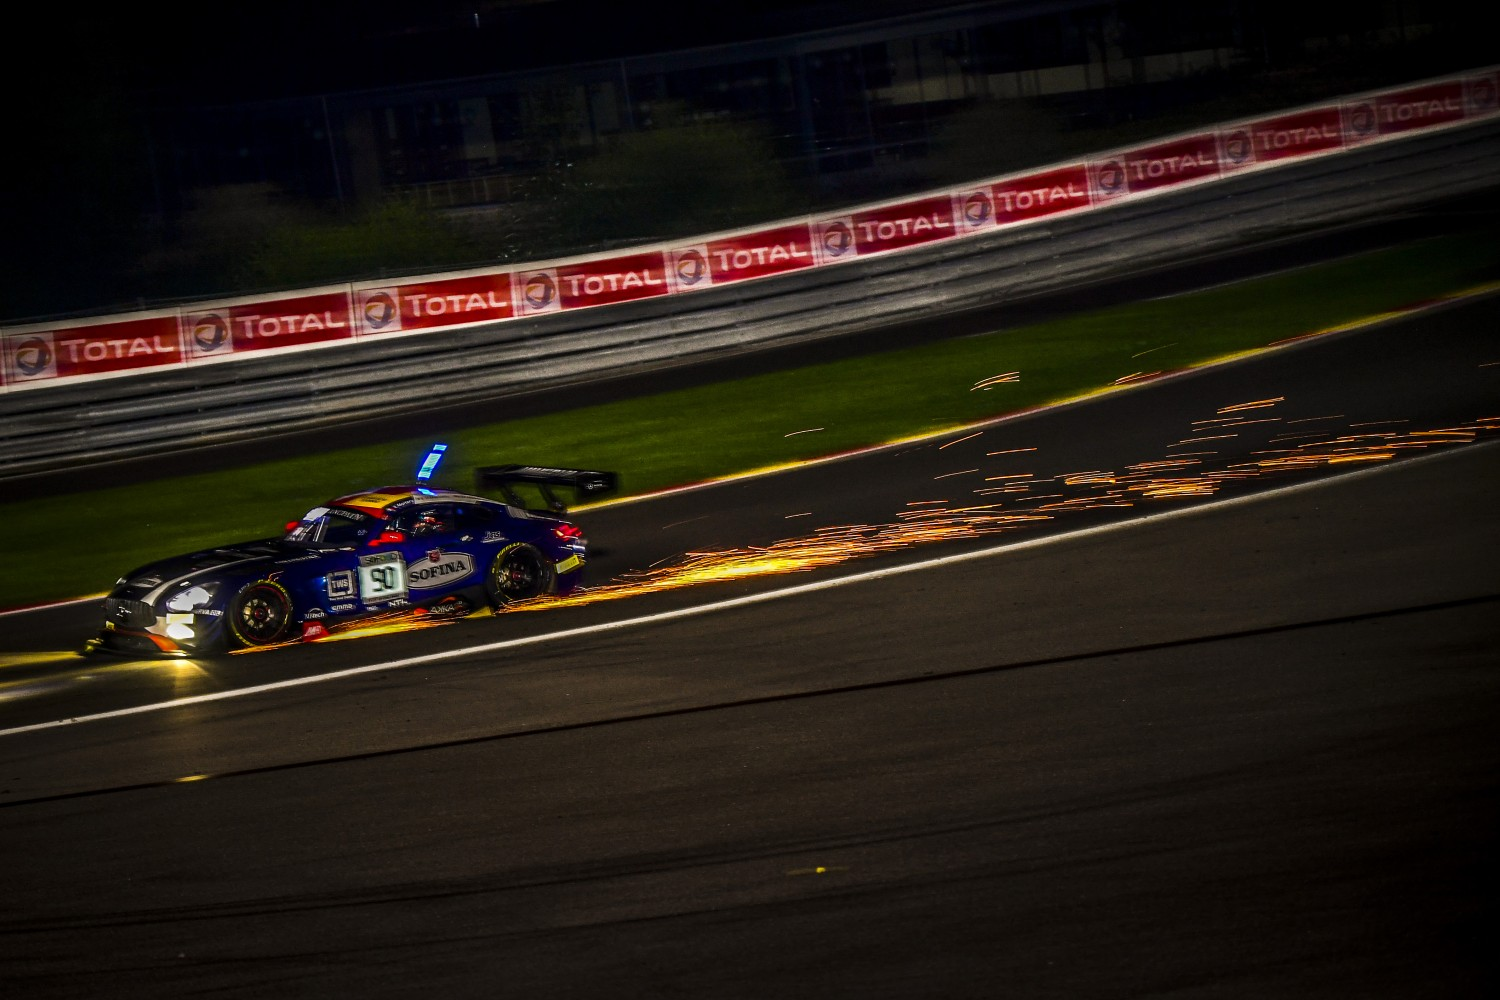 Raffaelle Marciello fastest in qualifying for the Total 24 Hours of Spa